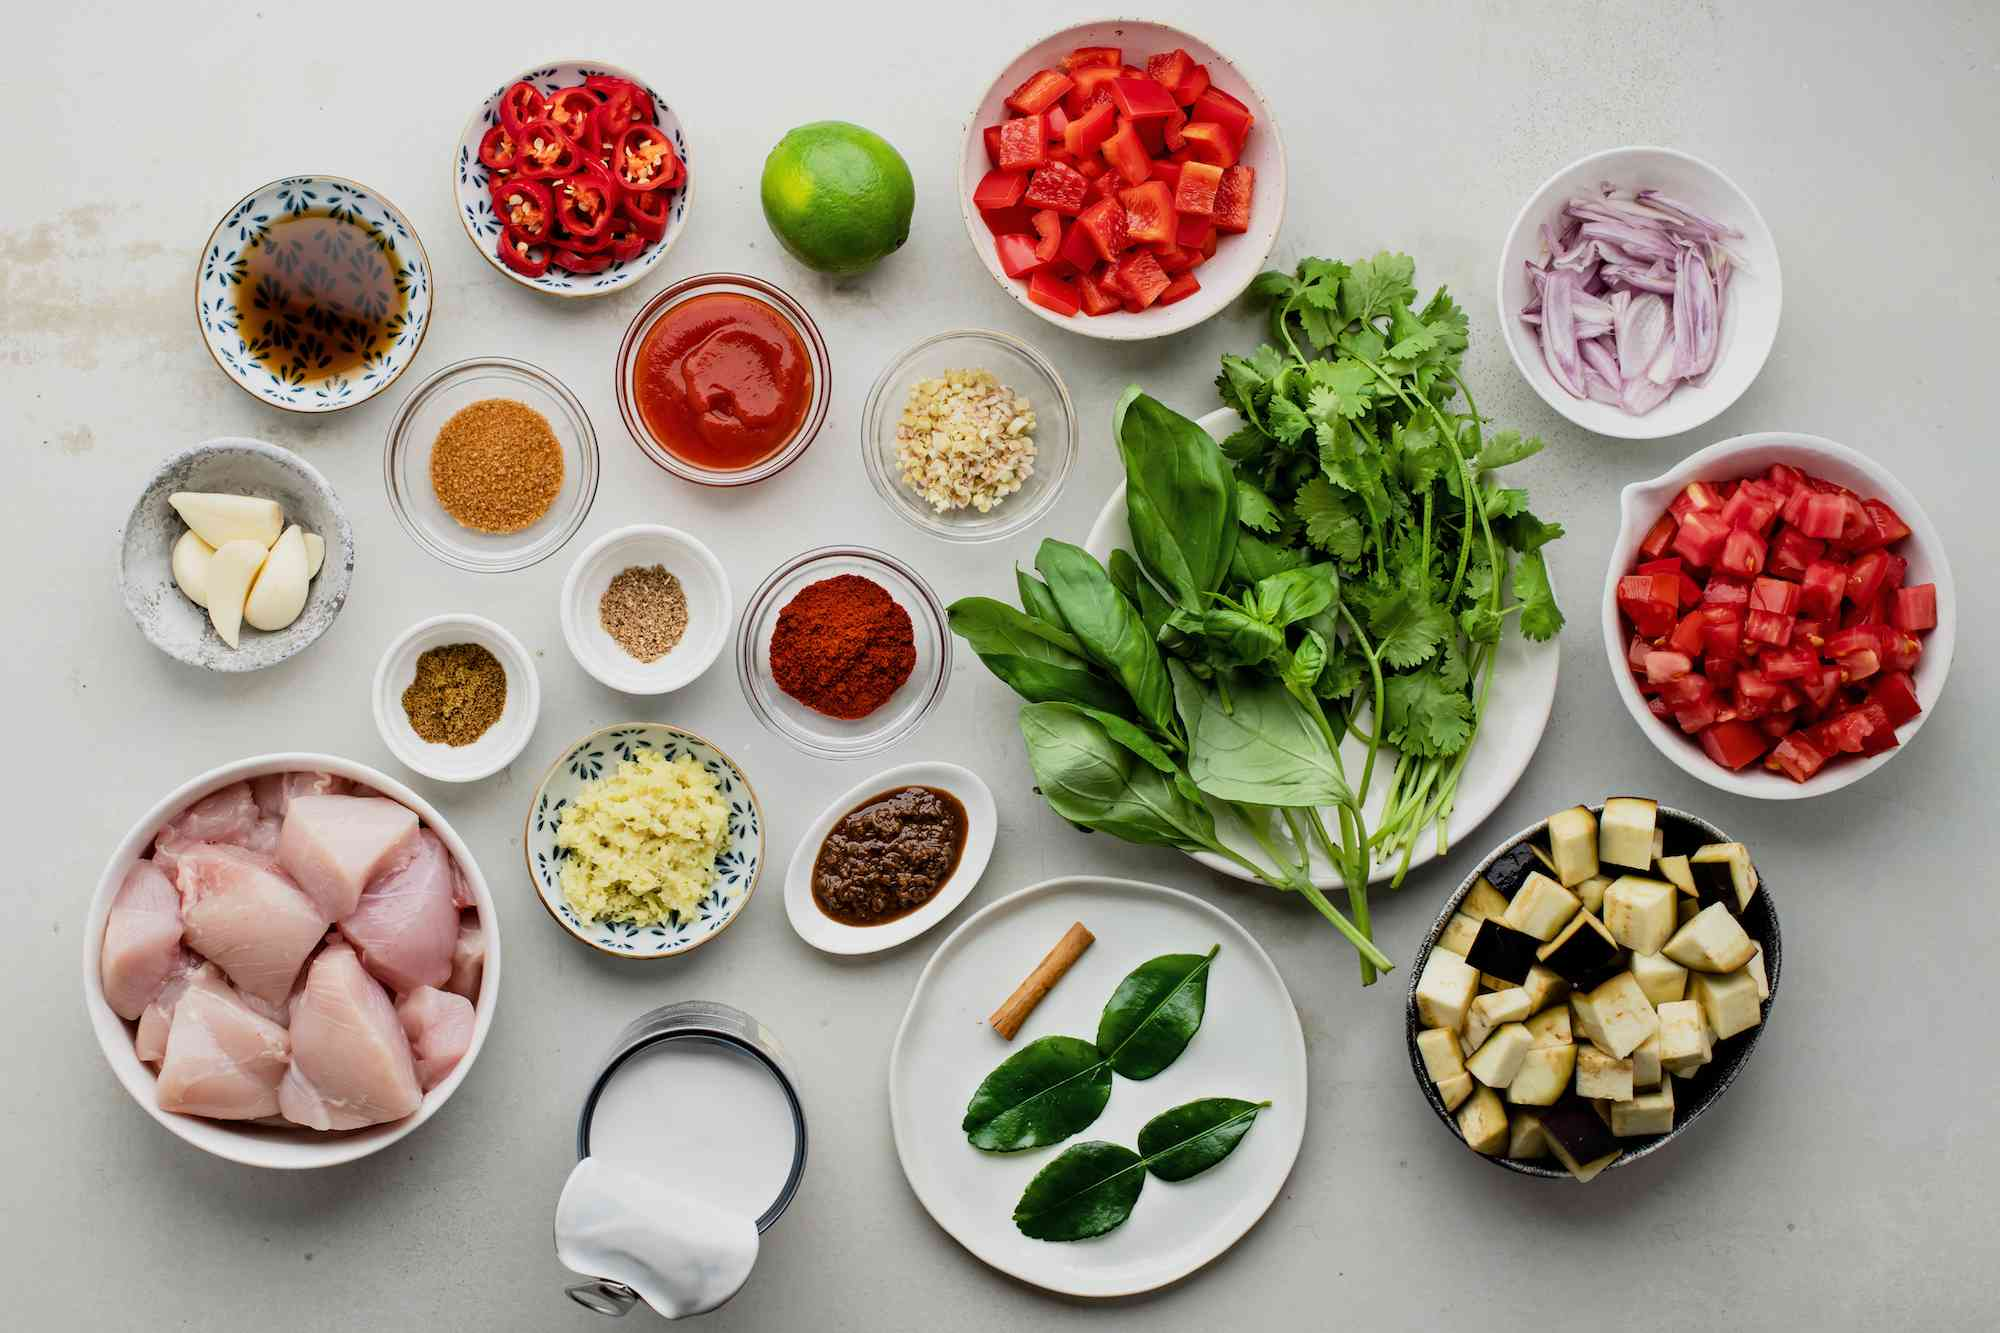 Ingredients for Thai red curry with chicken